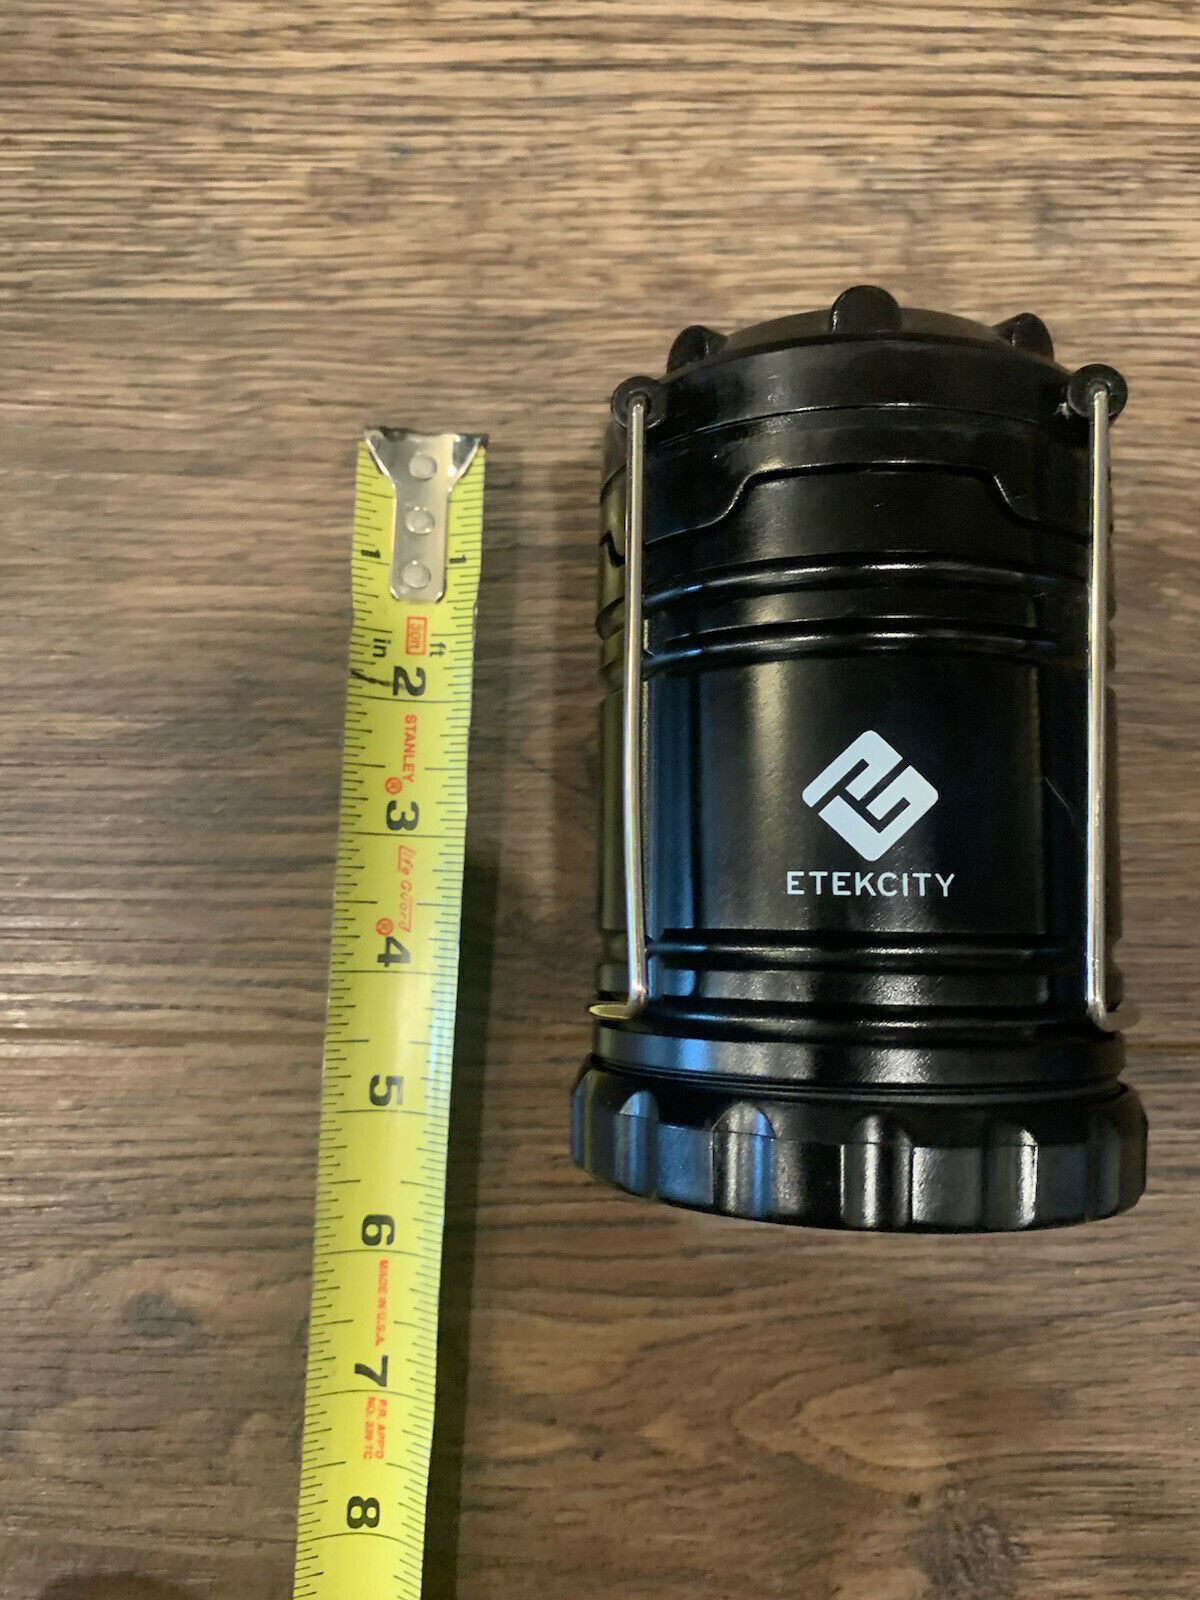 4 Count for sale online Etekcity CL10 Portable Outdoor LED Camping Lantern with 12 AA Batteries